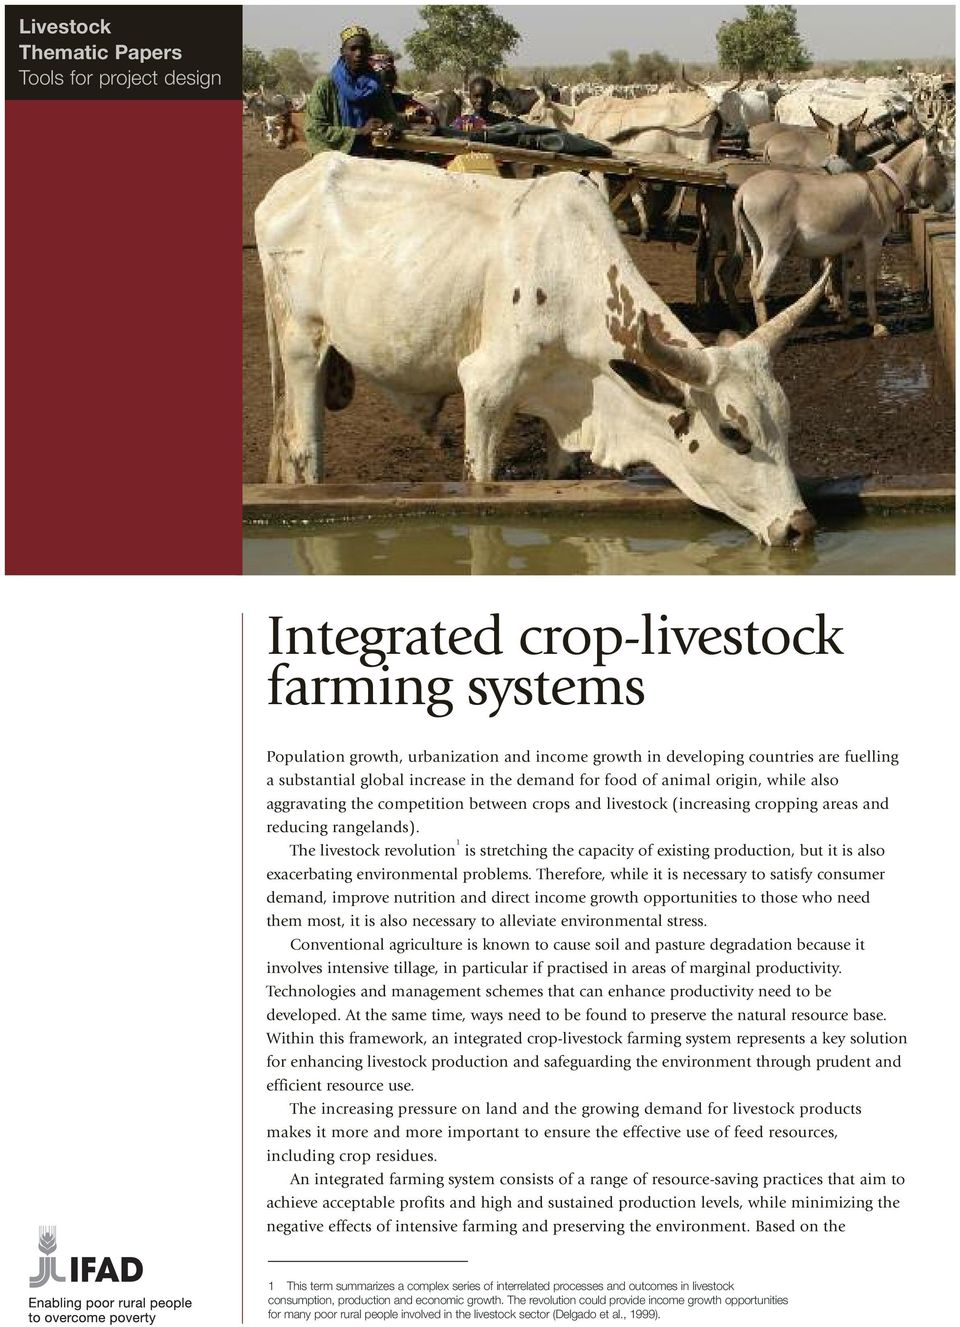 The livestock revolution 1 is stretching the capacity of existing production, but it is also exacerbating environmental problems.